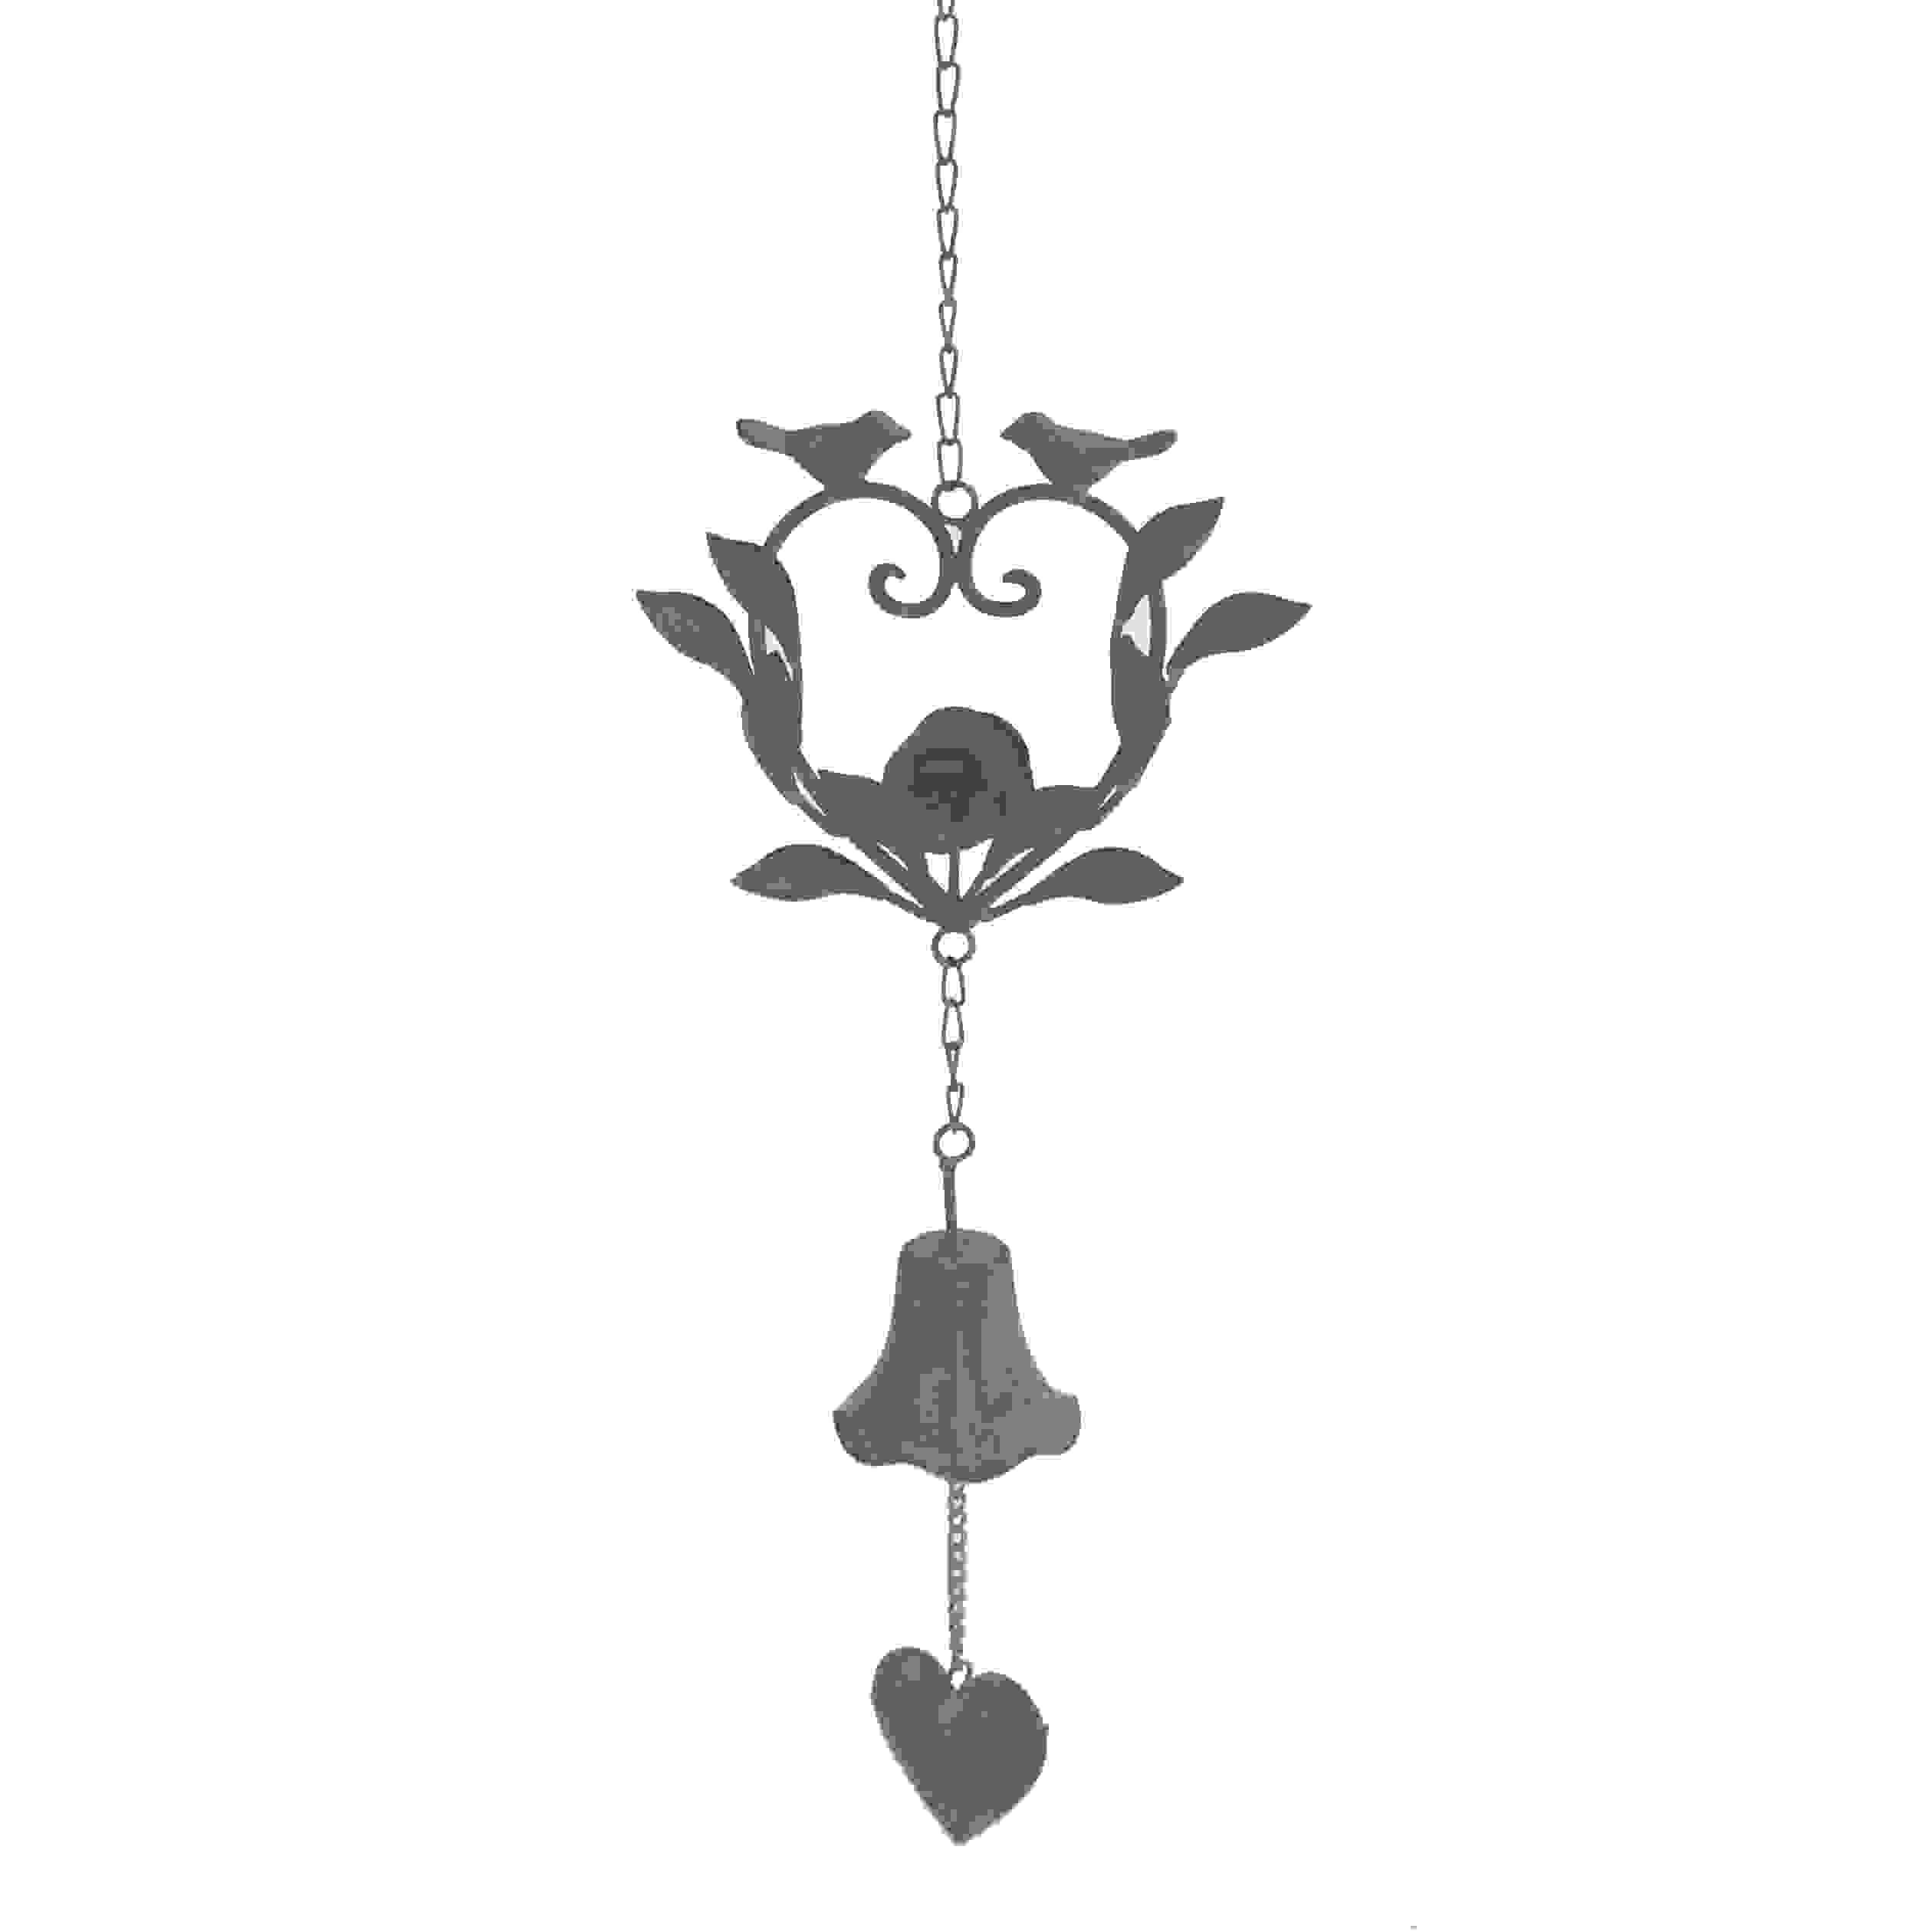 BIRDS WINDCHIME